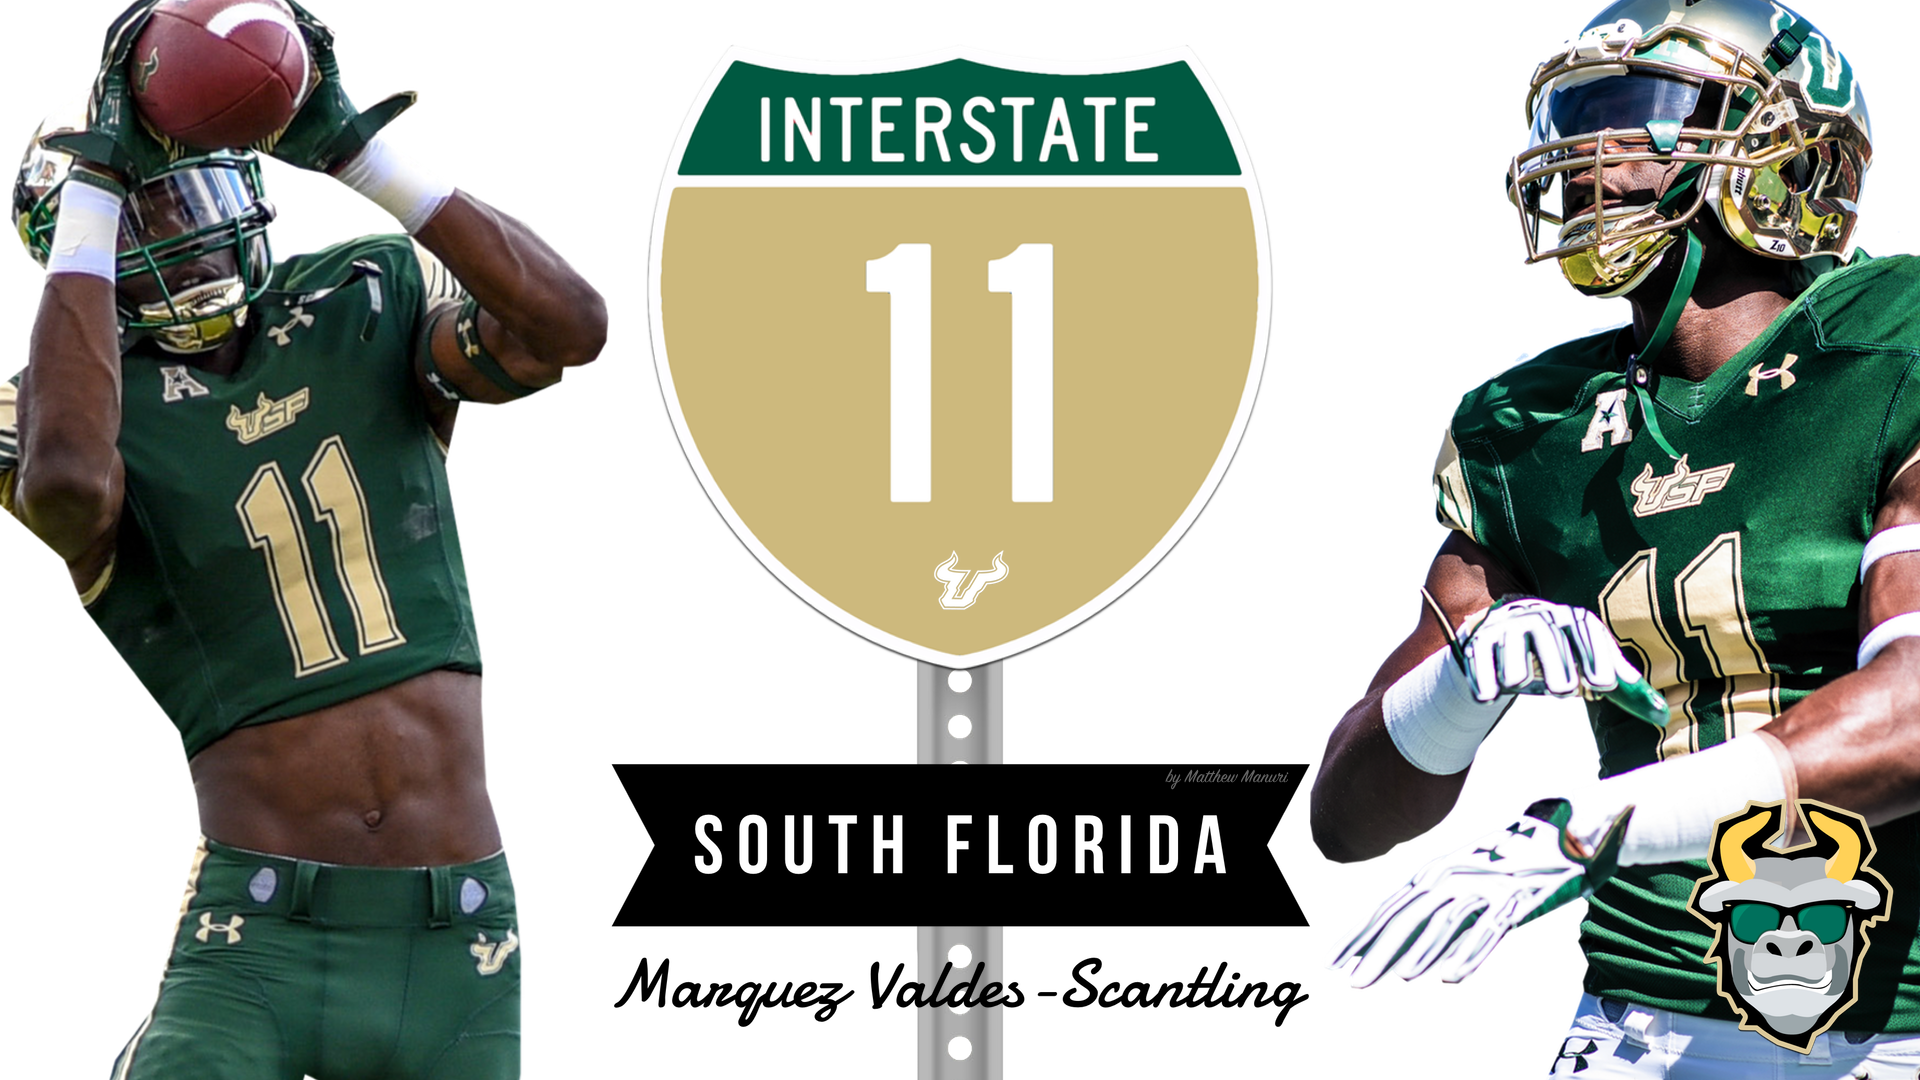 🎥 SoFloBulls.com 2016 USF Football Highlights Series Teaser: #Interstate11 WR Marquez Valdes-Scantling | SoFloBulls.com